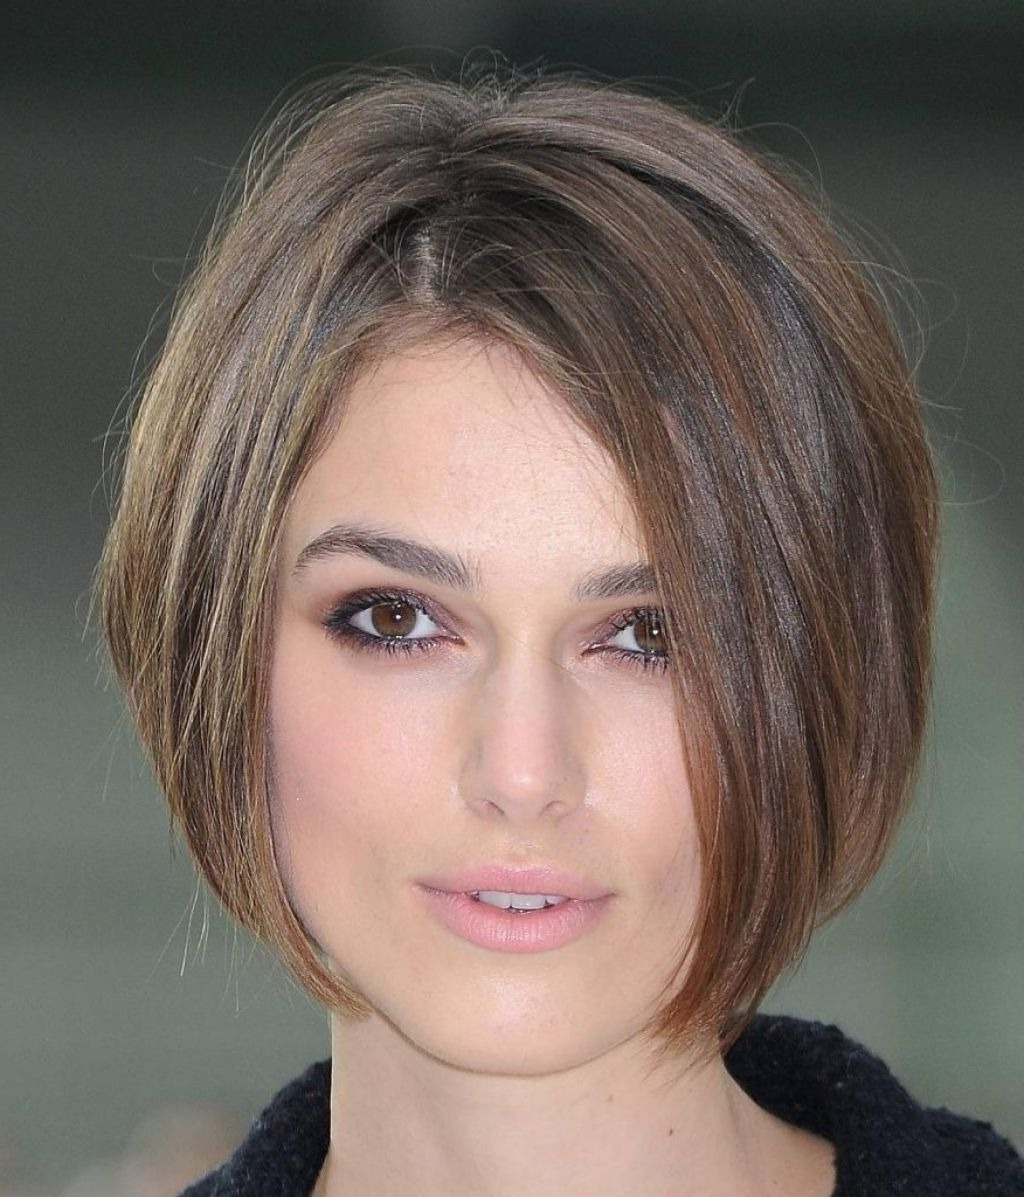 Trendy Short Hairstyles Round Face Fine Hair For Everyone | Hairstyles Pertaining To Trendy Short Hairstyles For Thin Hair (View 9 of 25)